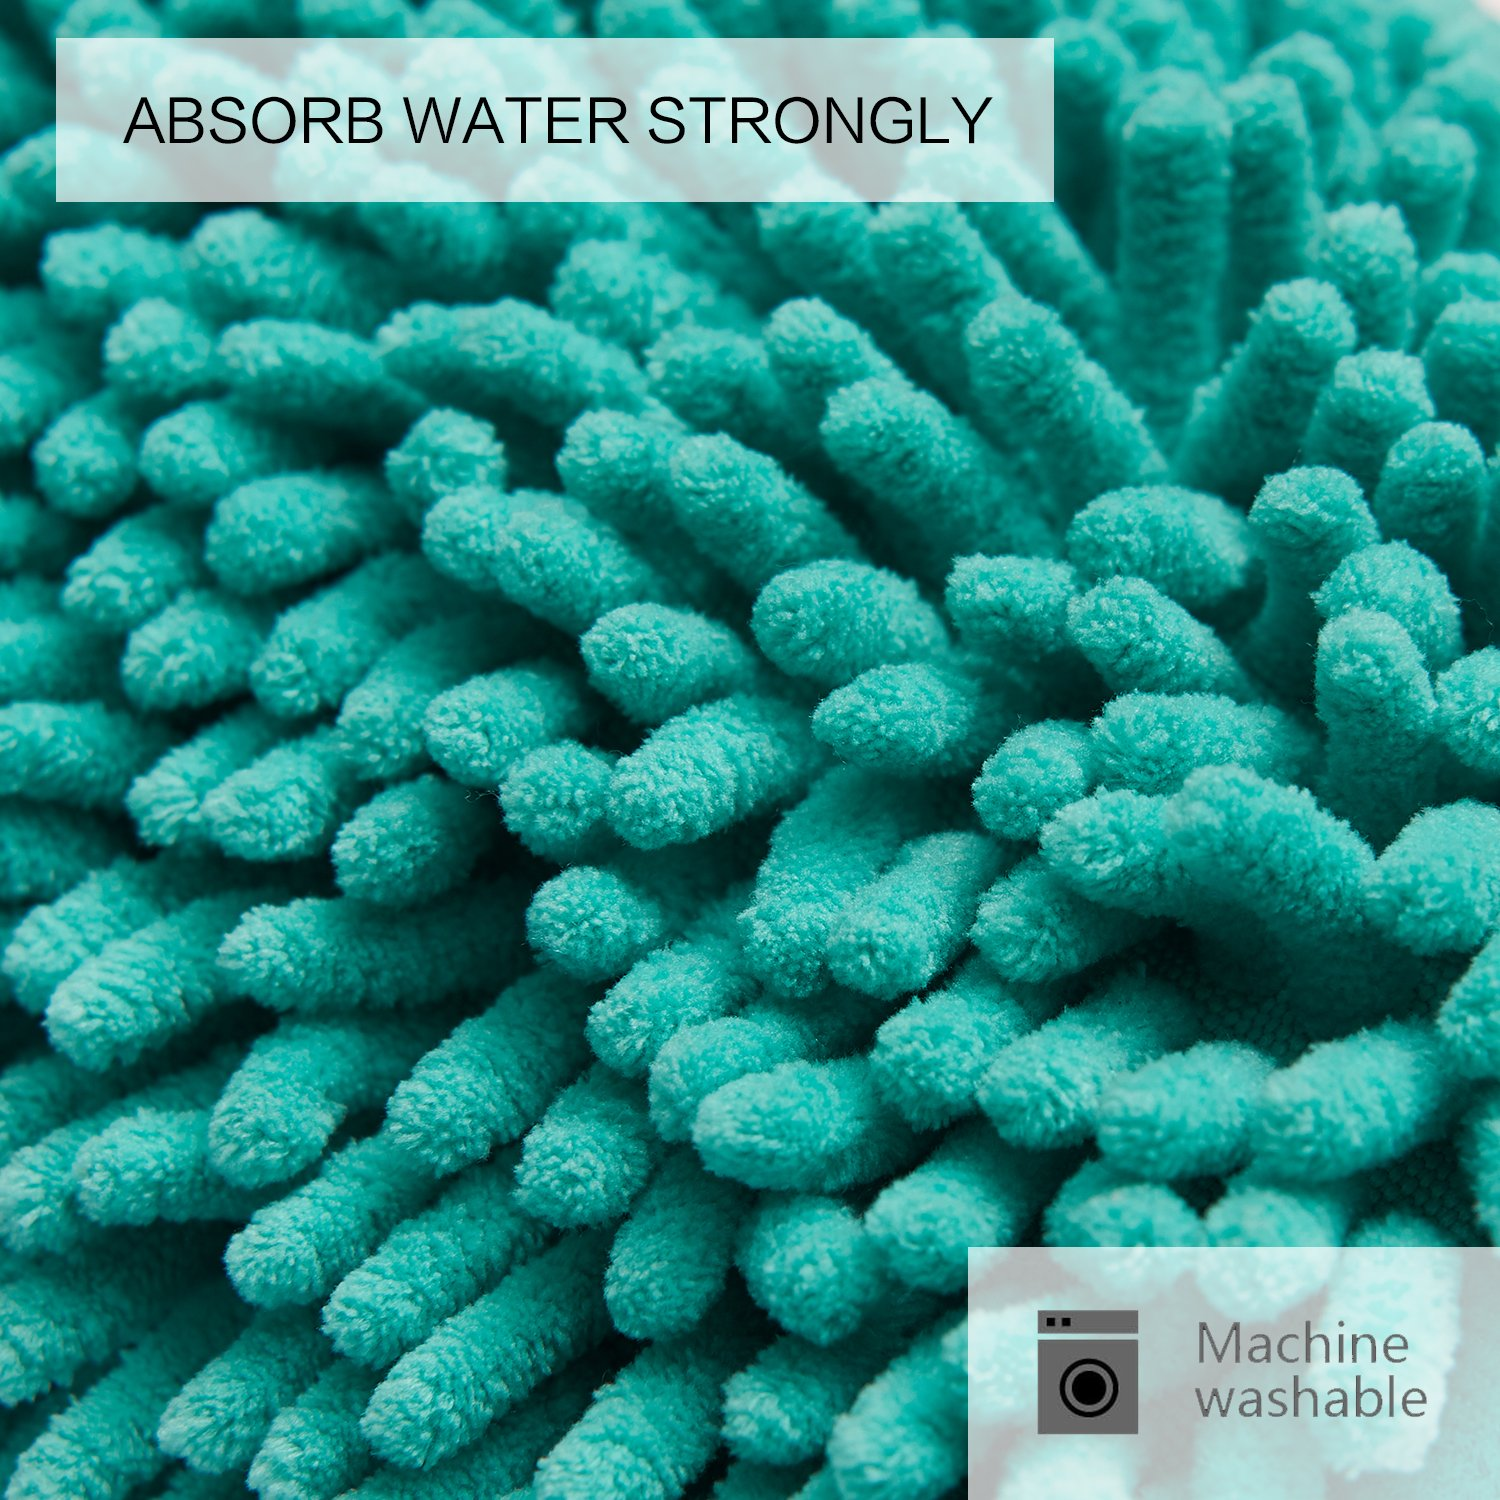 Turquoise Bath Rugs For Dry The Feet Simple Turquoise: DEARTOWN 20x32 Inch TPR Non-Slip Soft Microfibers Of